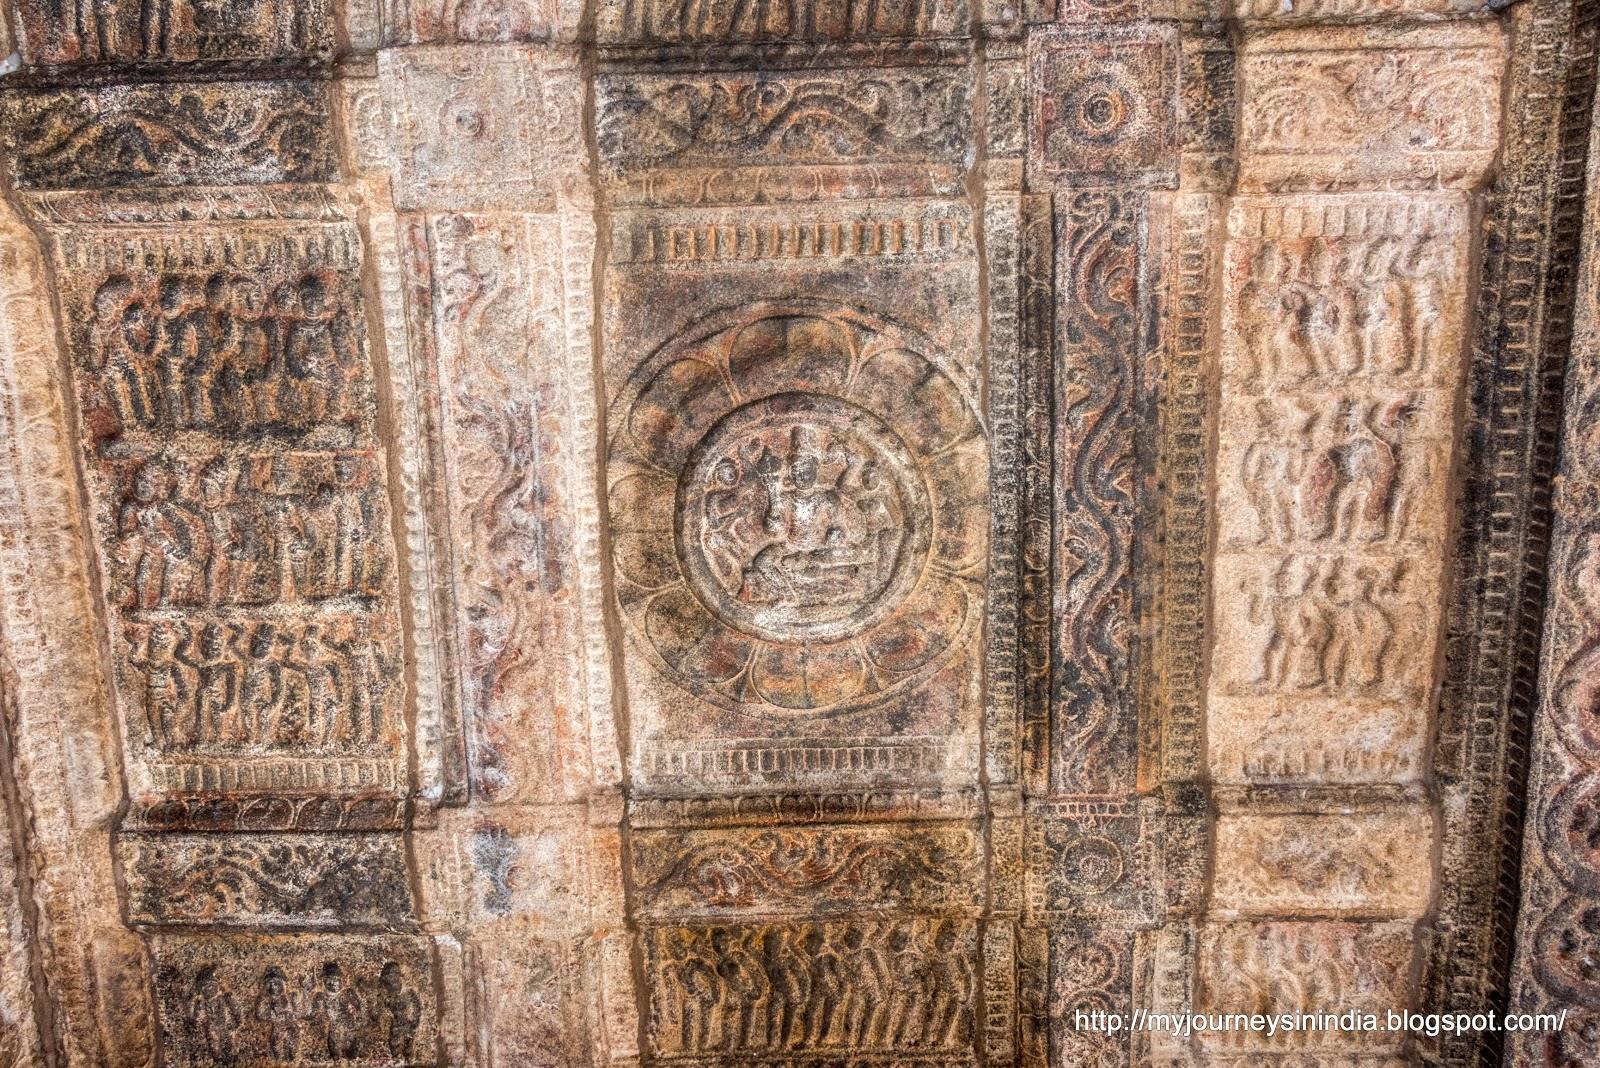 Darasuram Roof carvings